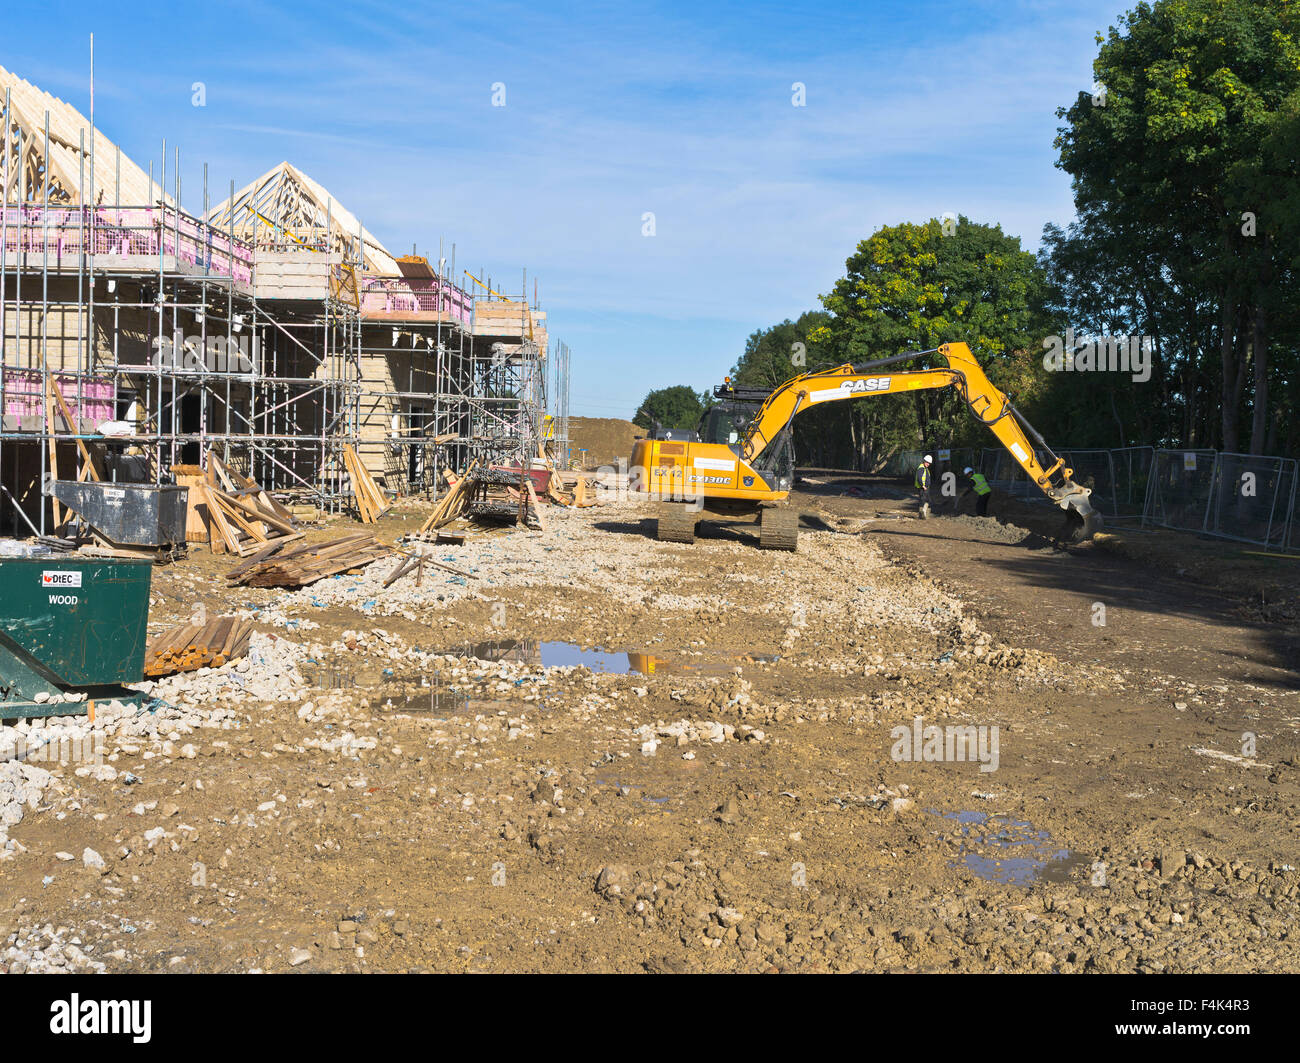 Dh redrow homes uk new houses uk construction site for House building website